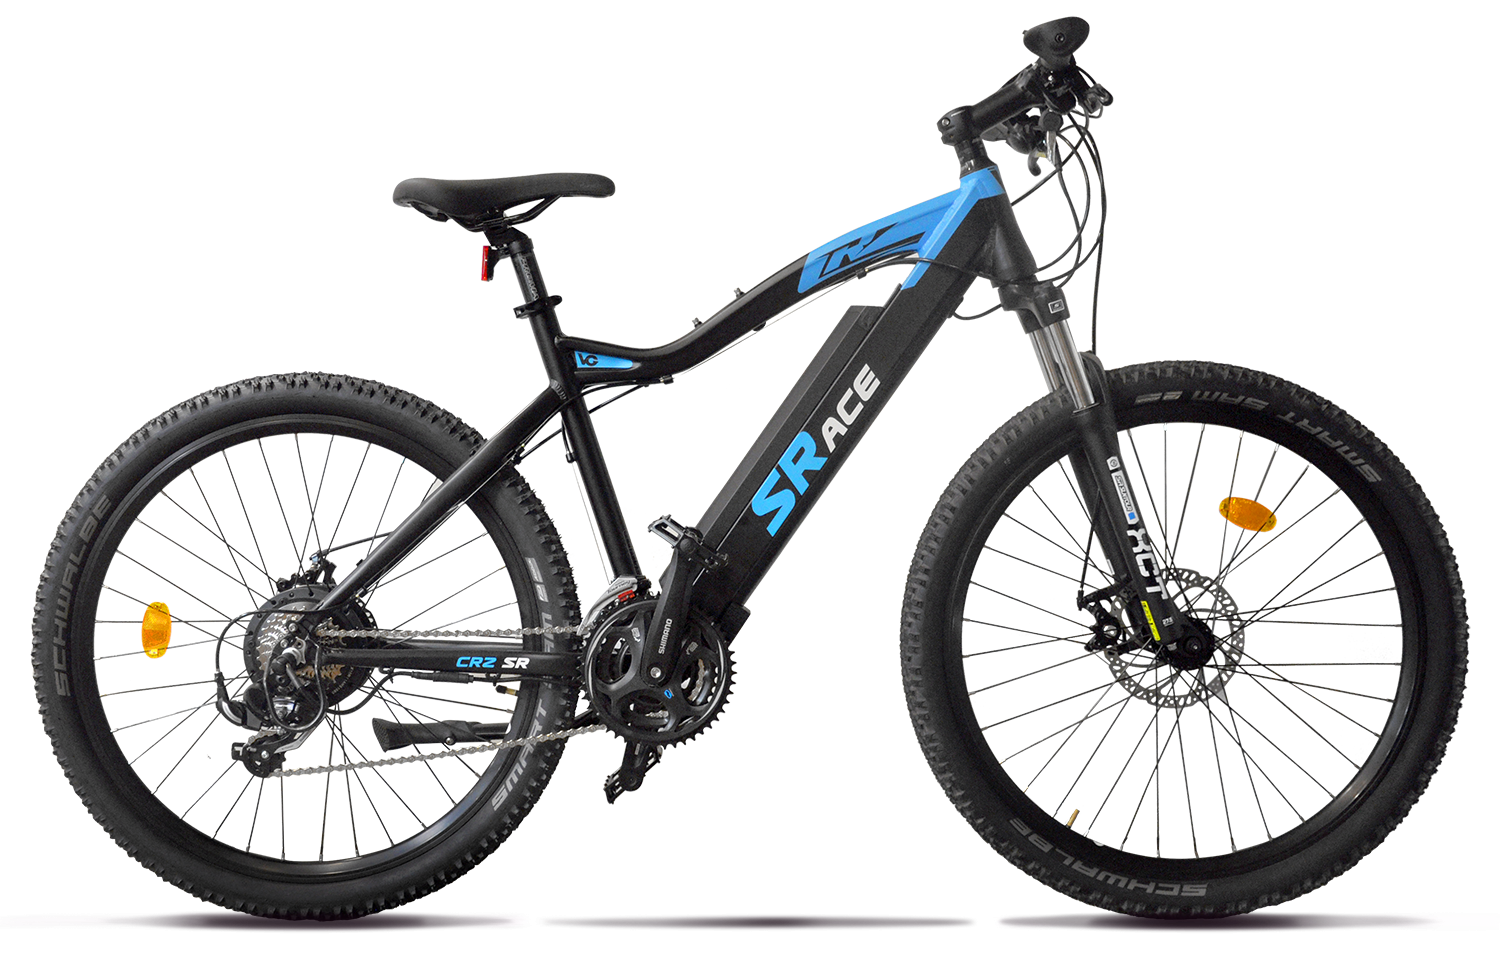 https://w8w5m3f8.stackpathcdn.com/16460-thickbox_extralarge/vtt-electrique-crz-srace-13ah-470wh-bleu.jpg